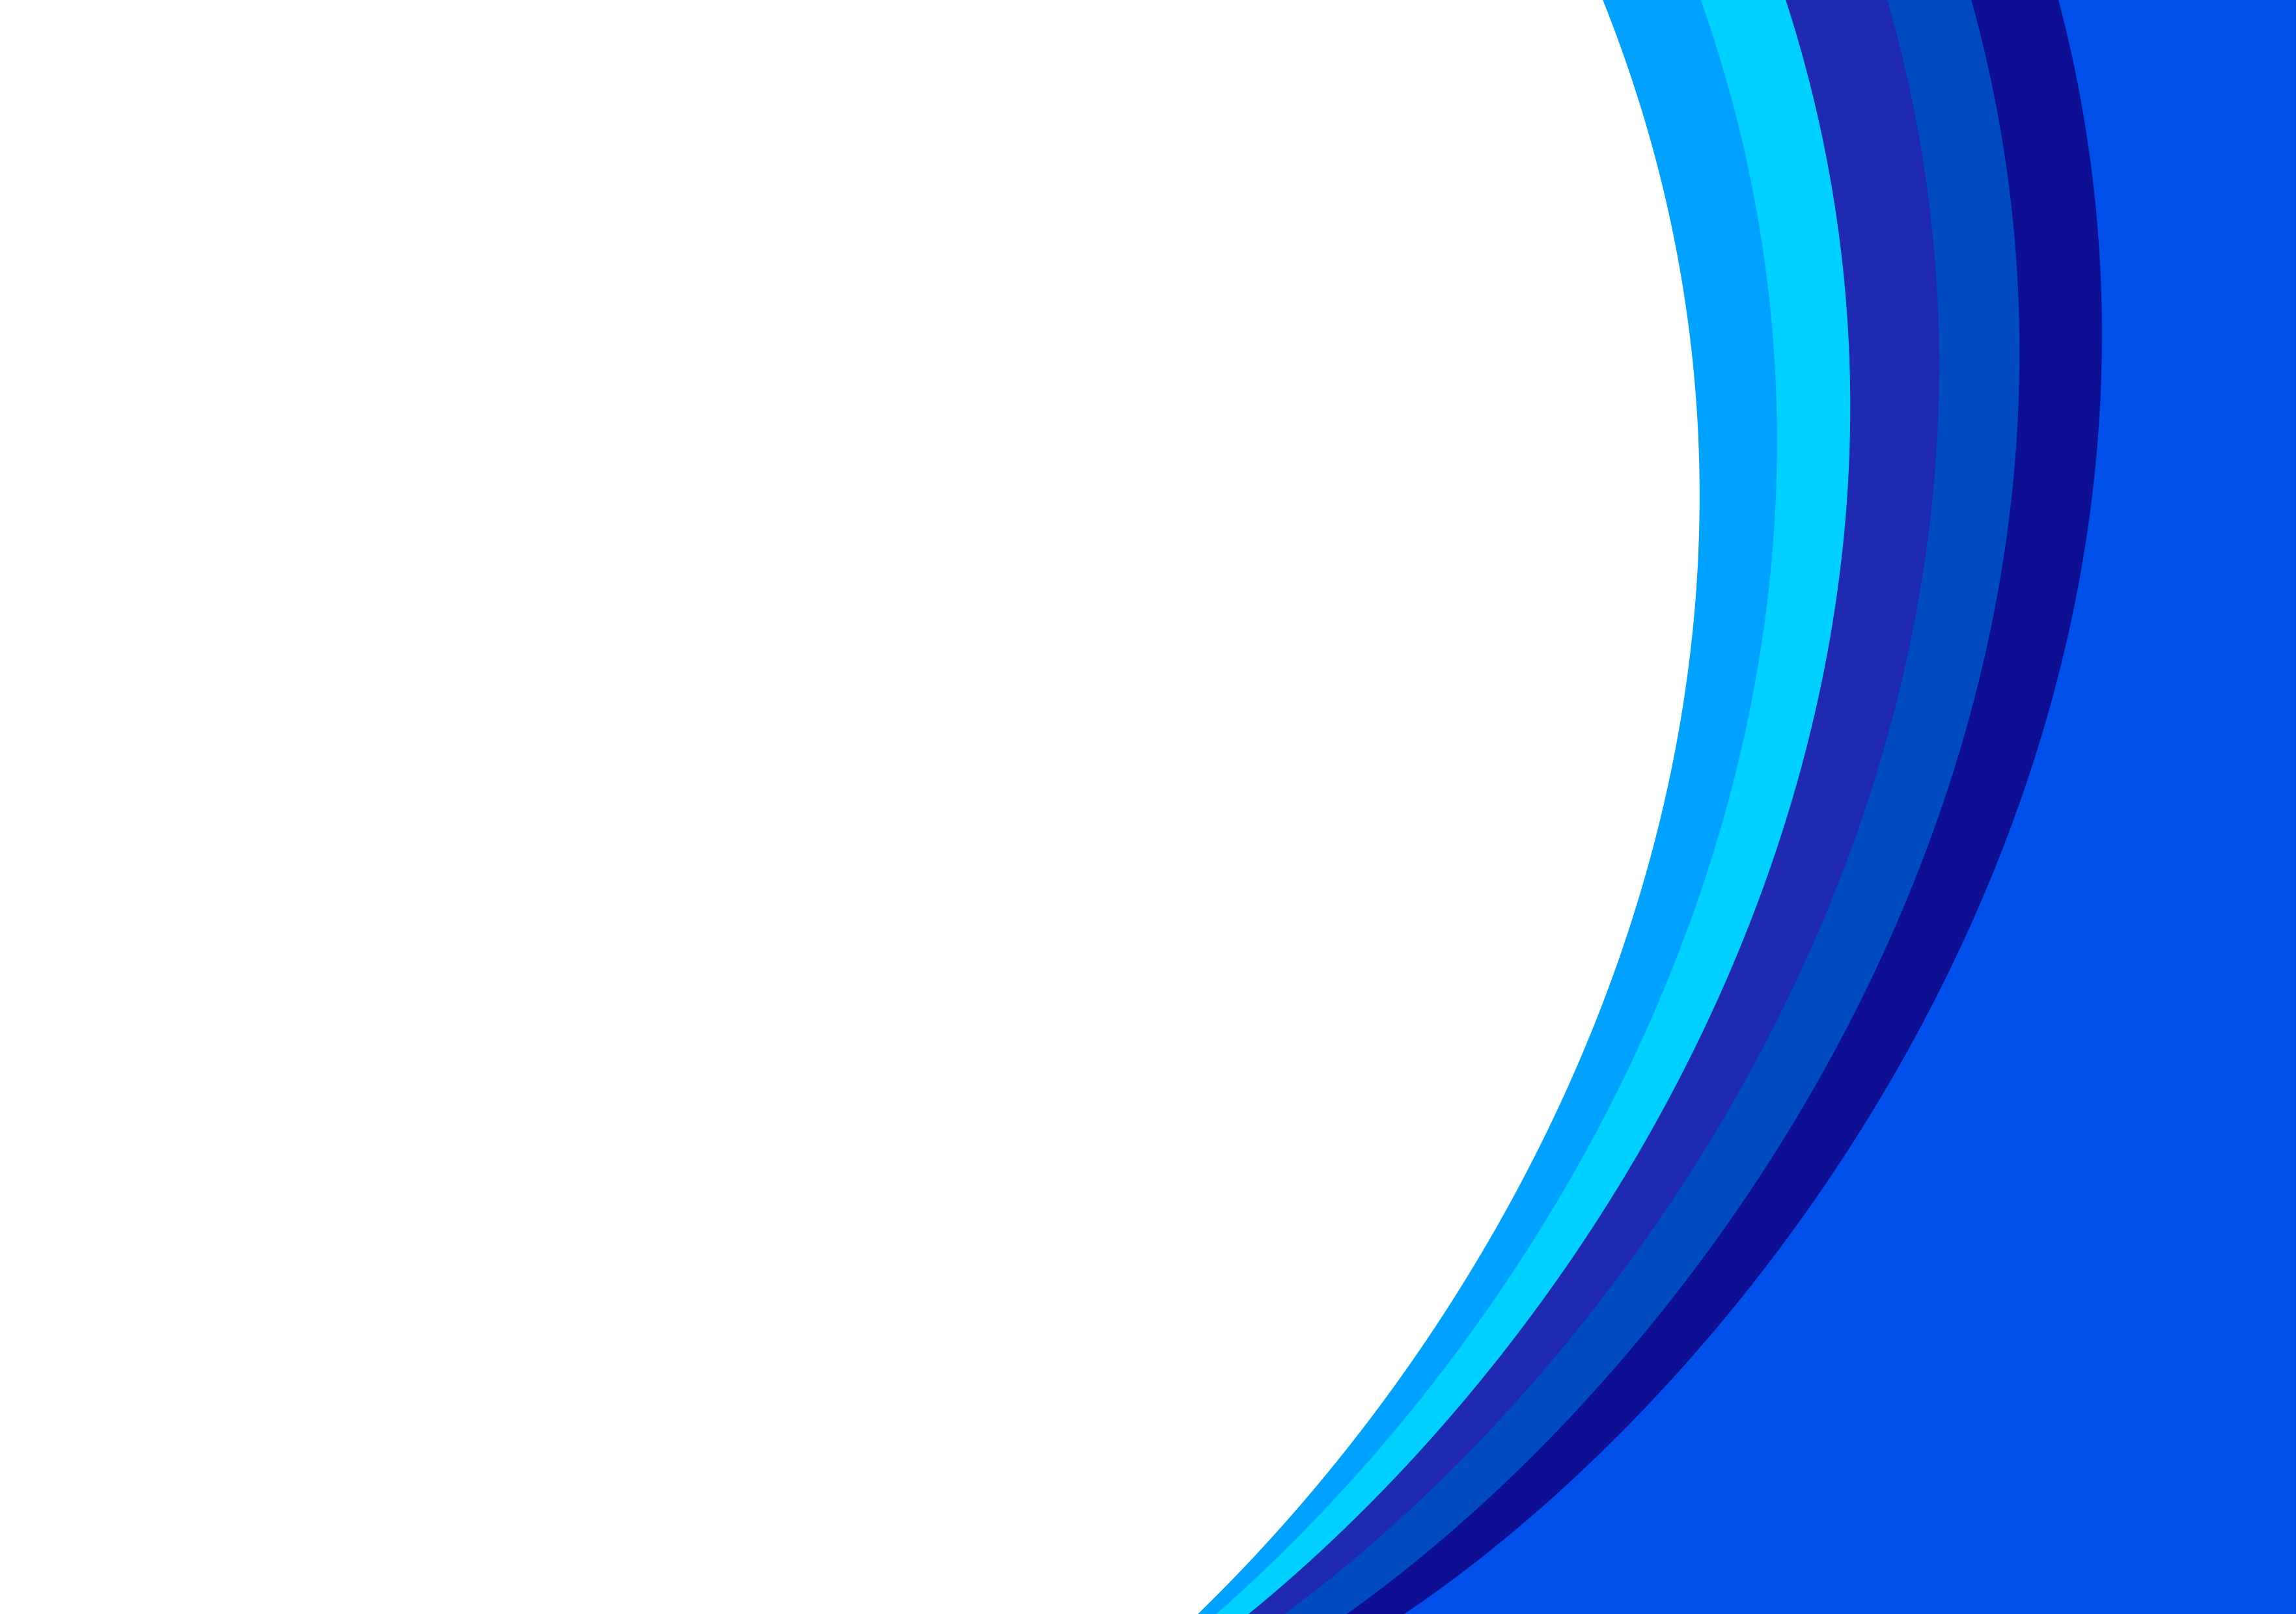 simple blue background design - photo #8